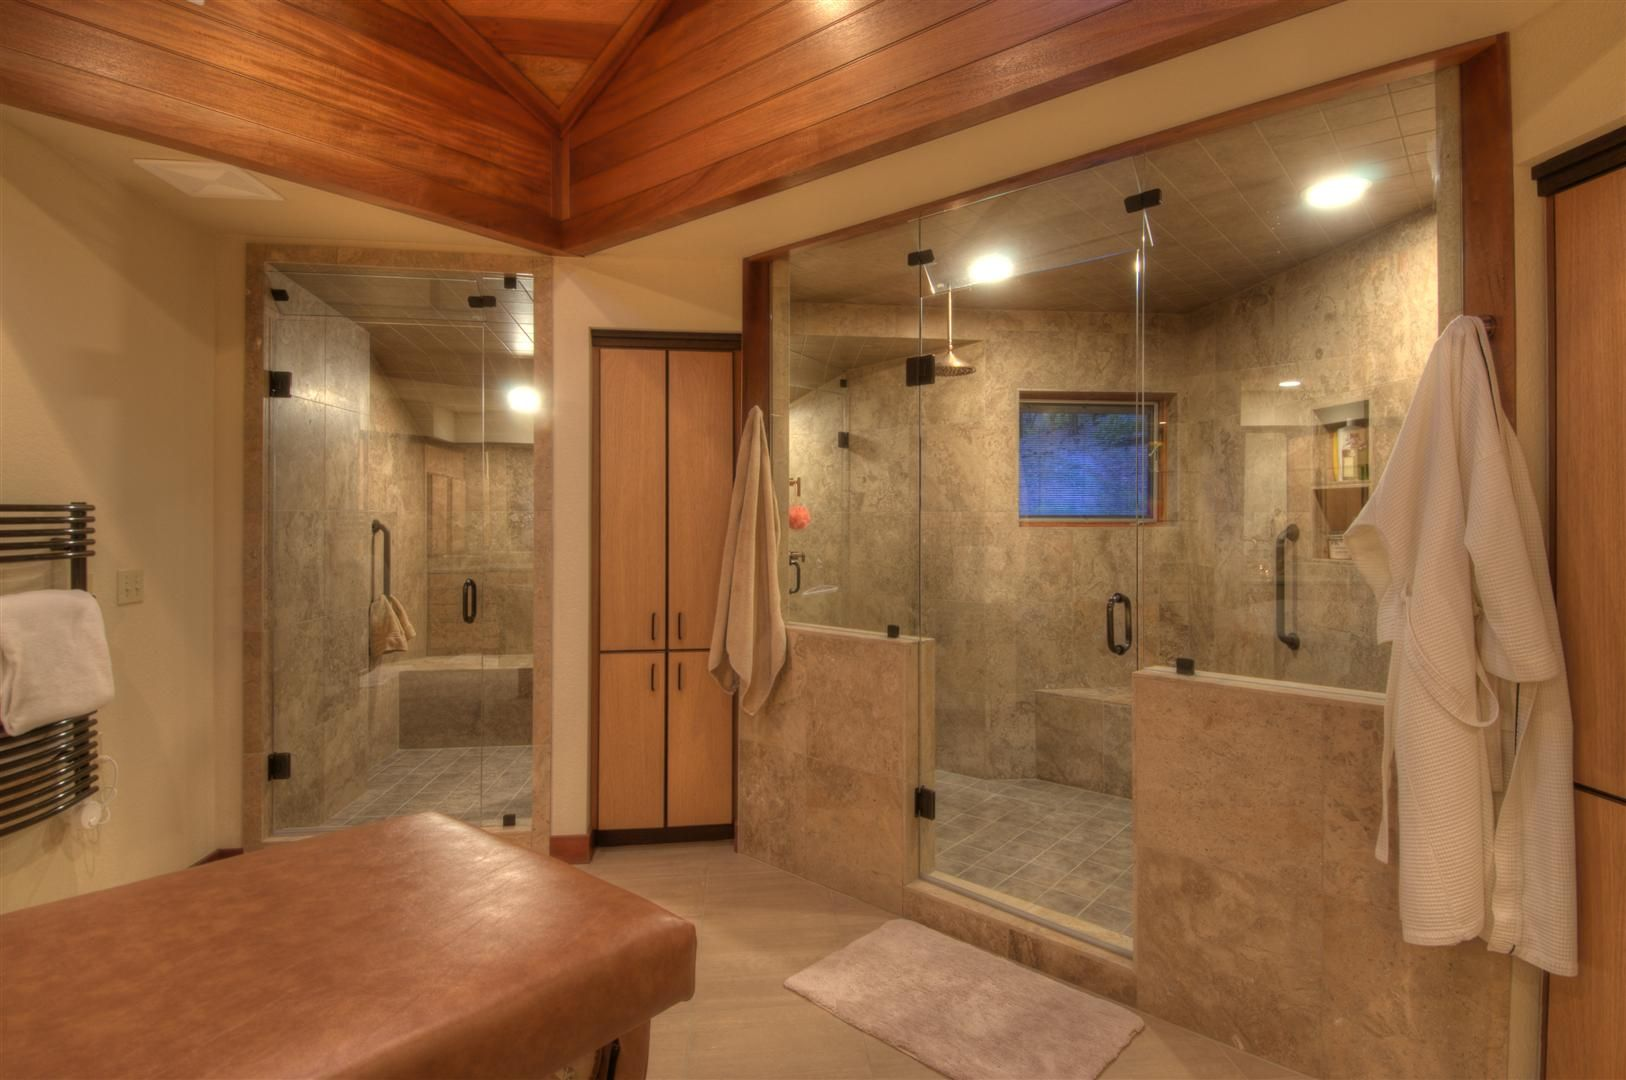 Personable Bright Brown Steam Shower Bathroom Design With Rectangular Door Glass Shower And Light Brown Marble Tiles And Russet Ceramic Wall Plus Brown Wood